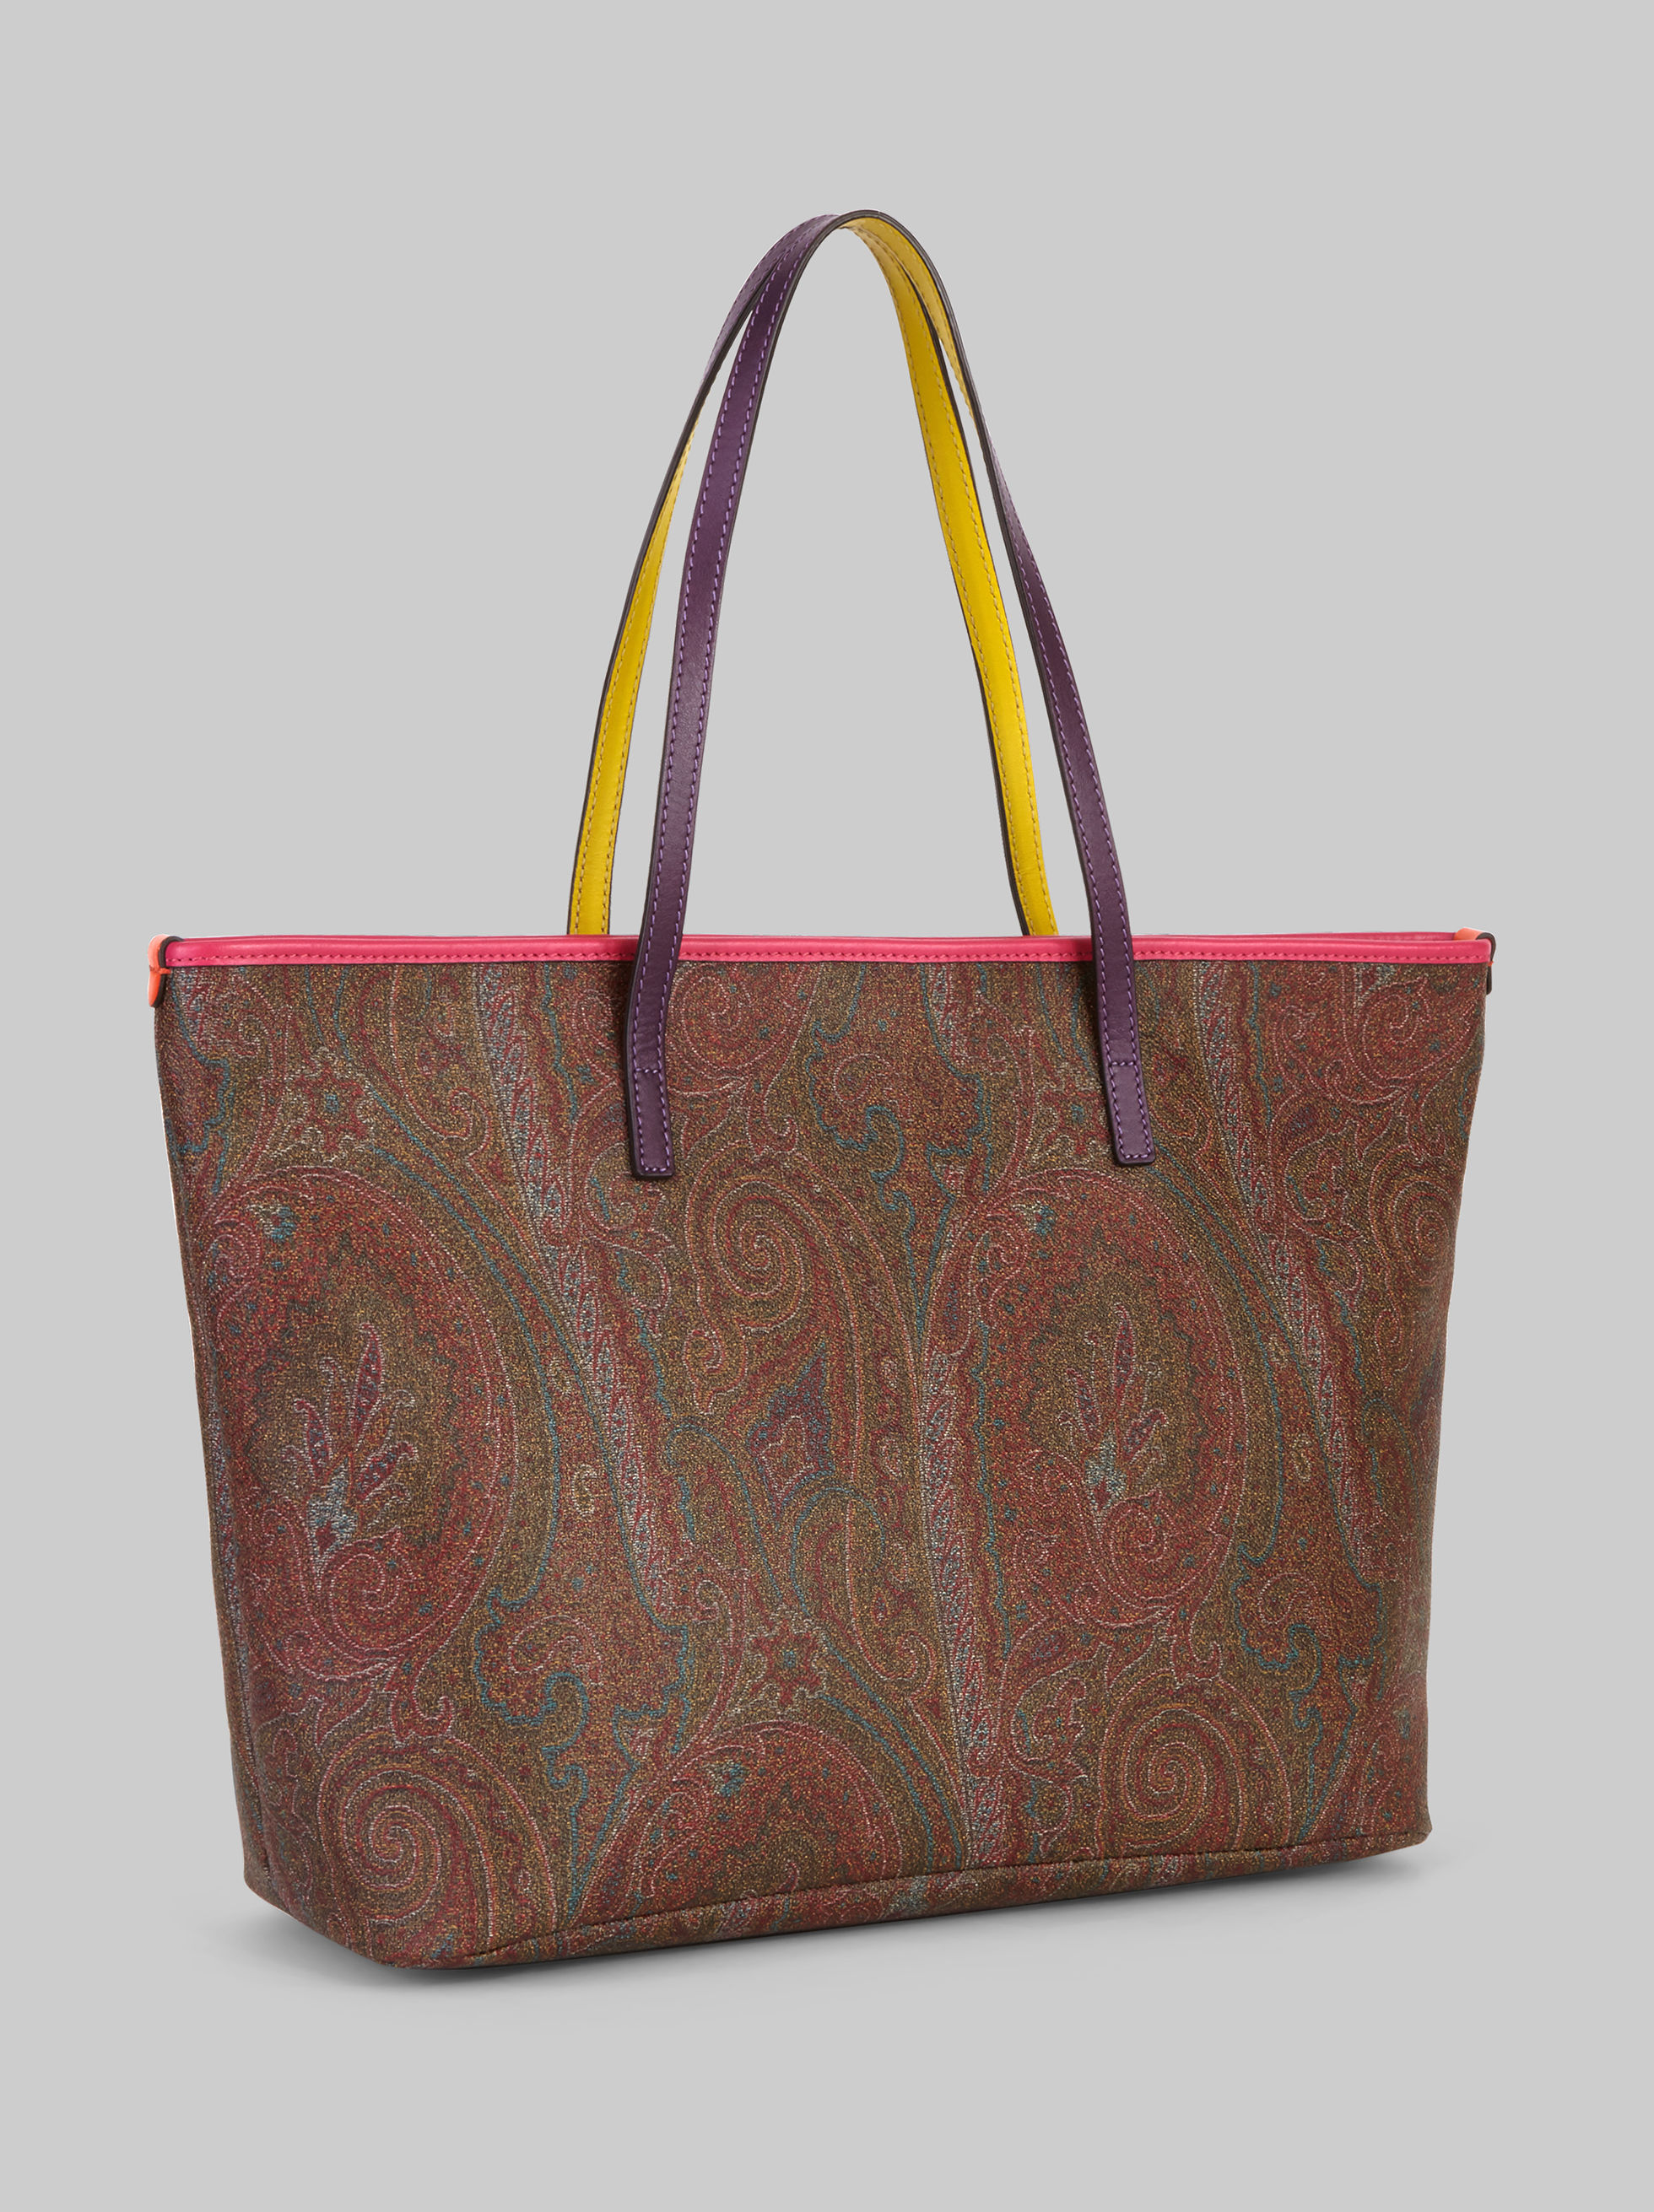 PAISLEY SHOPPINGTASCHE MIT MULTICOLOR-DETAILS